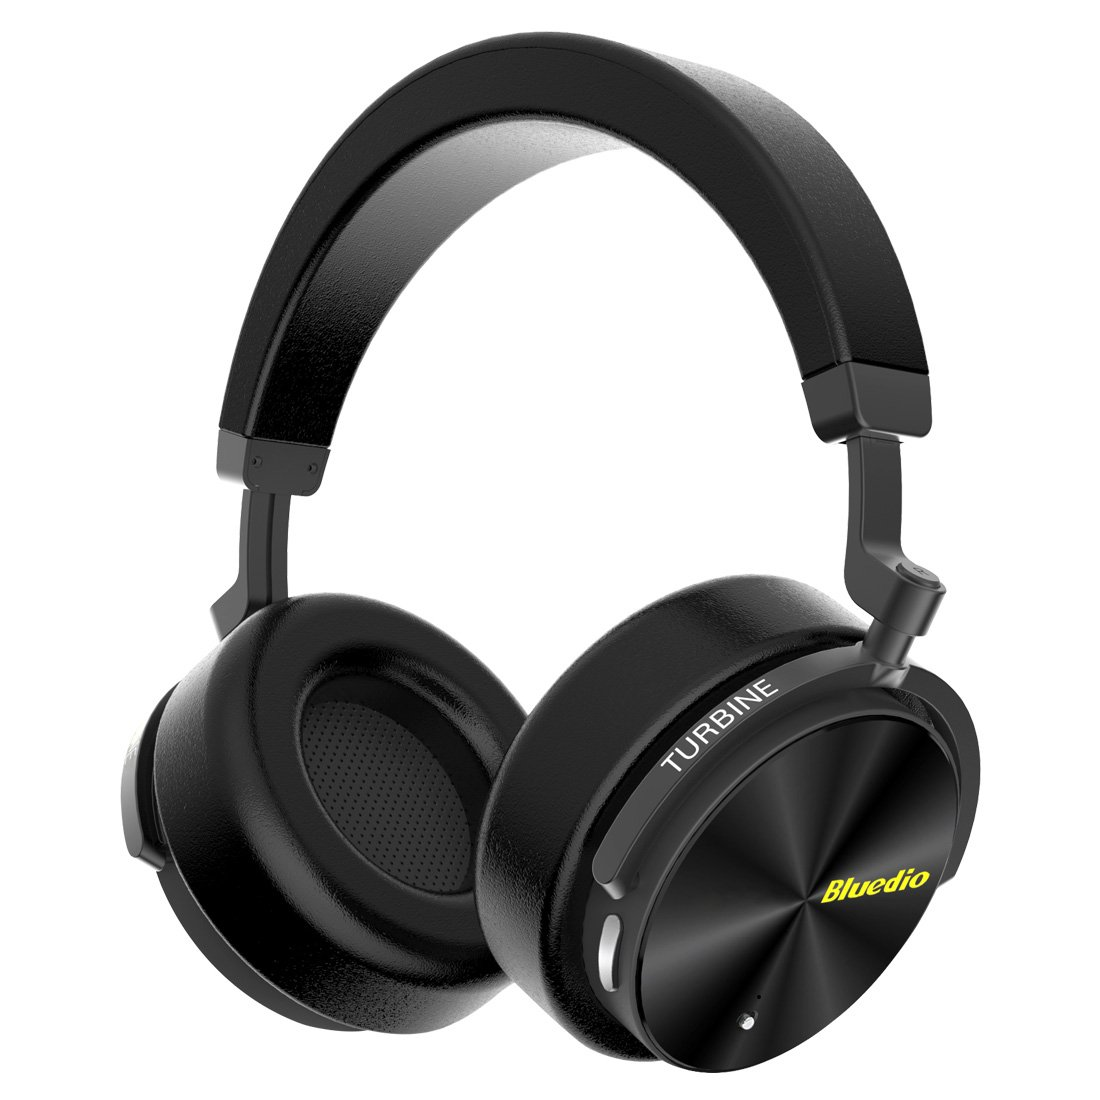 Bluedio T5 Active Noise Cancelling Wireless Bass Bluetooth Headphones Portable Stereo Headsets with Mic for Phones and Music Over Ear Gift (Black)